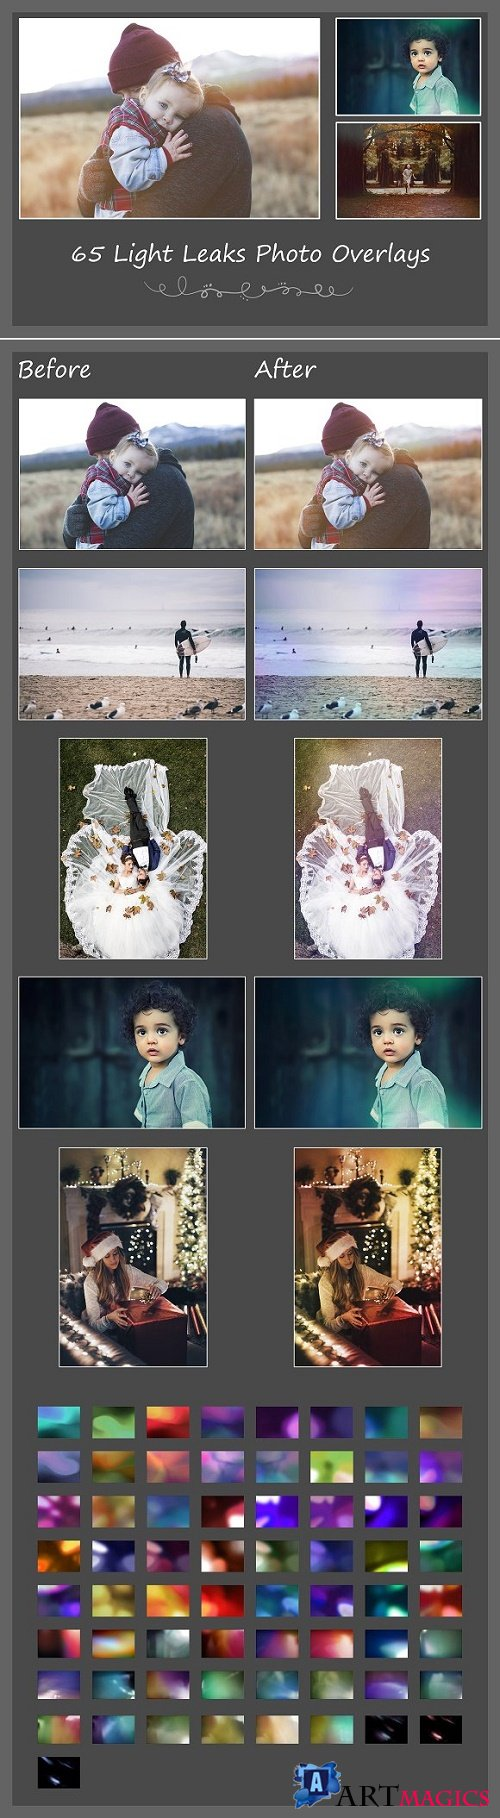 65 Light Leaks Photo Overlays - 2735344